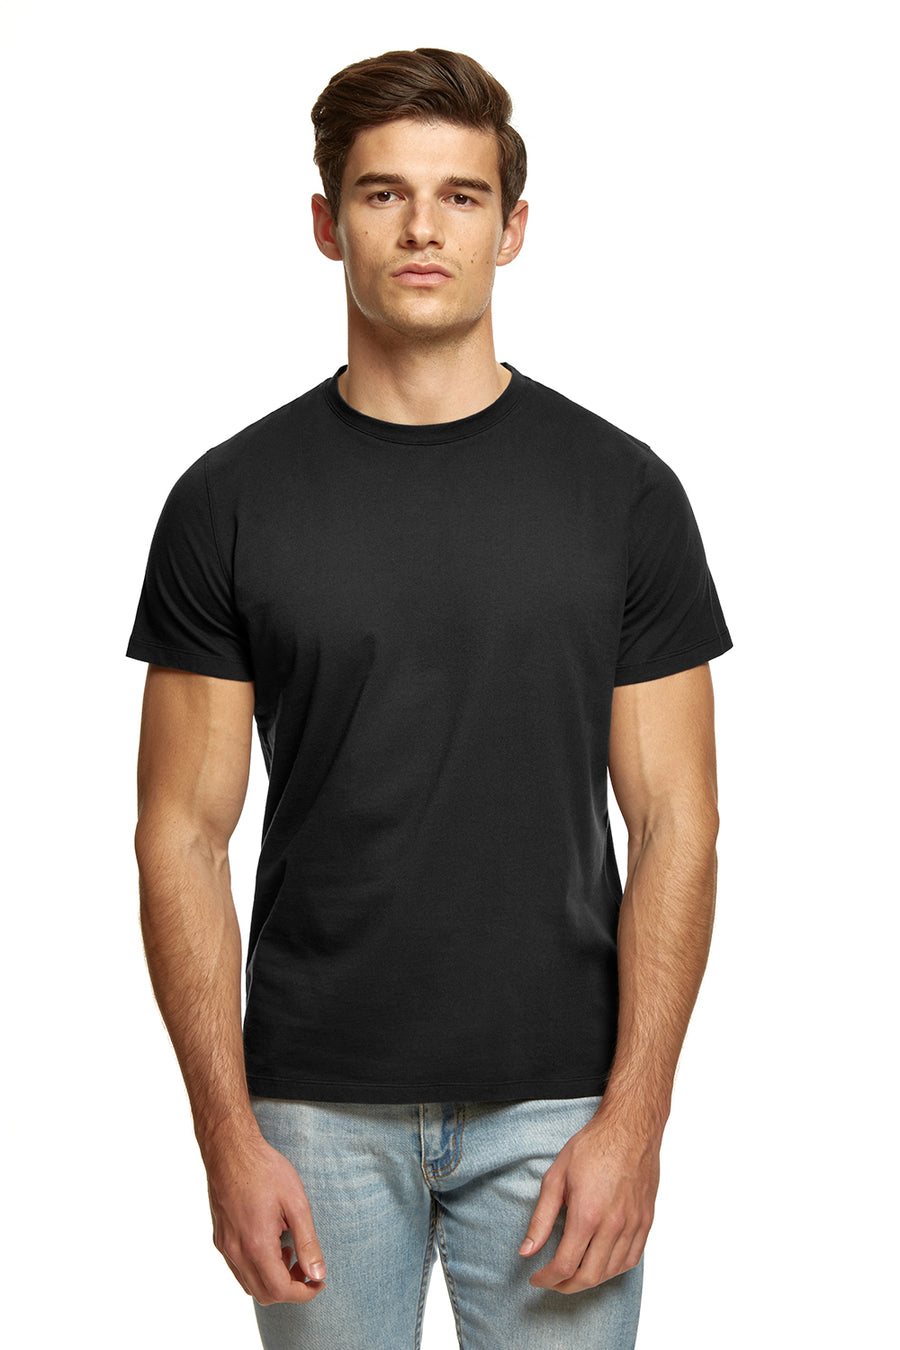 clothPROJECT men's navy ethical sustainable luxury 100% cotton t-shirt with free delivery